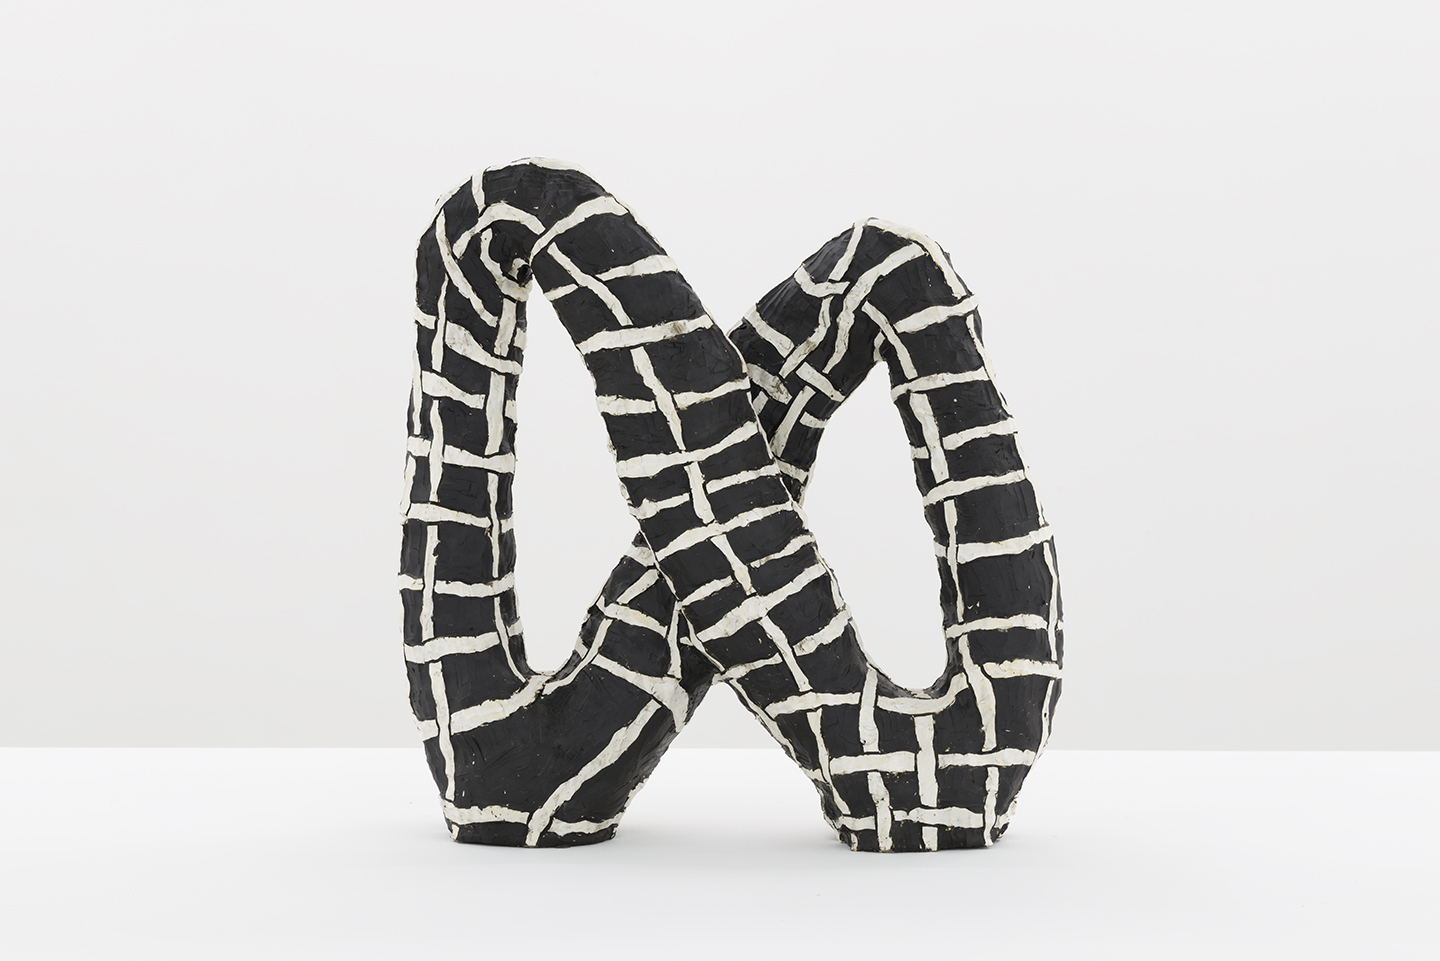 Julia Haft-Candell's Infinity: Weave, a ceramic sculpture of an black infinity with interwoven white stripes